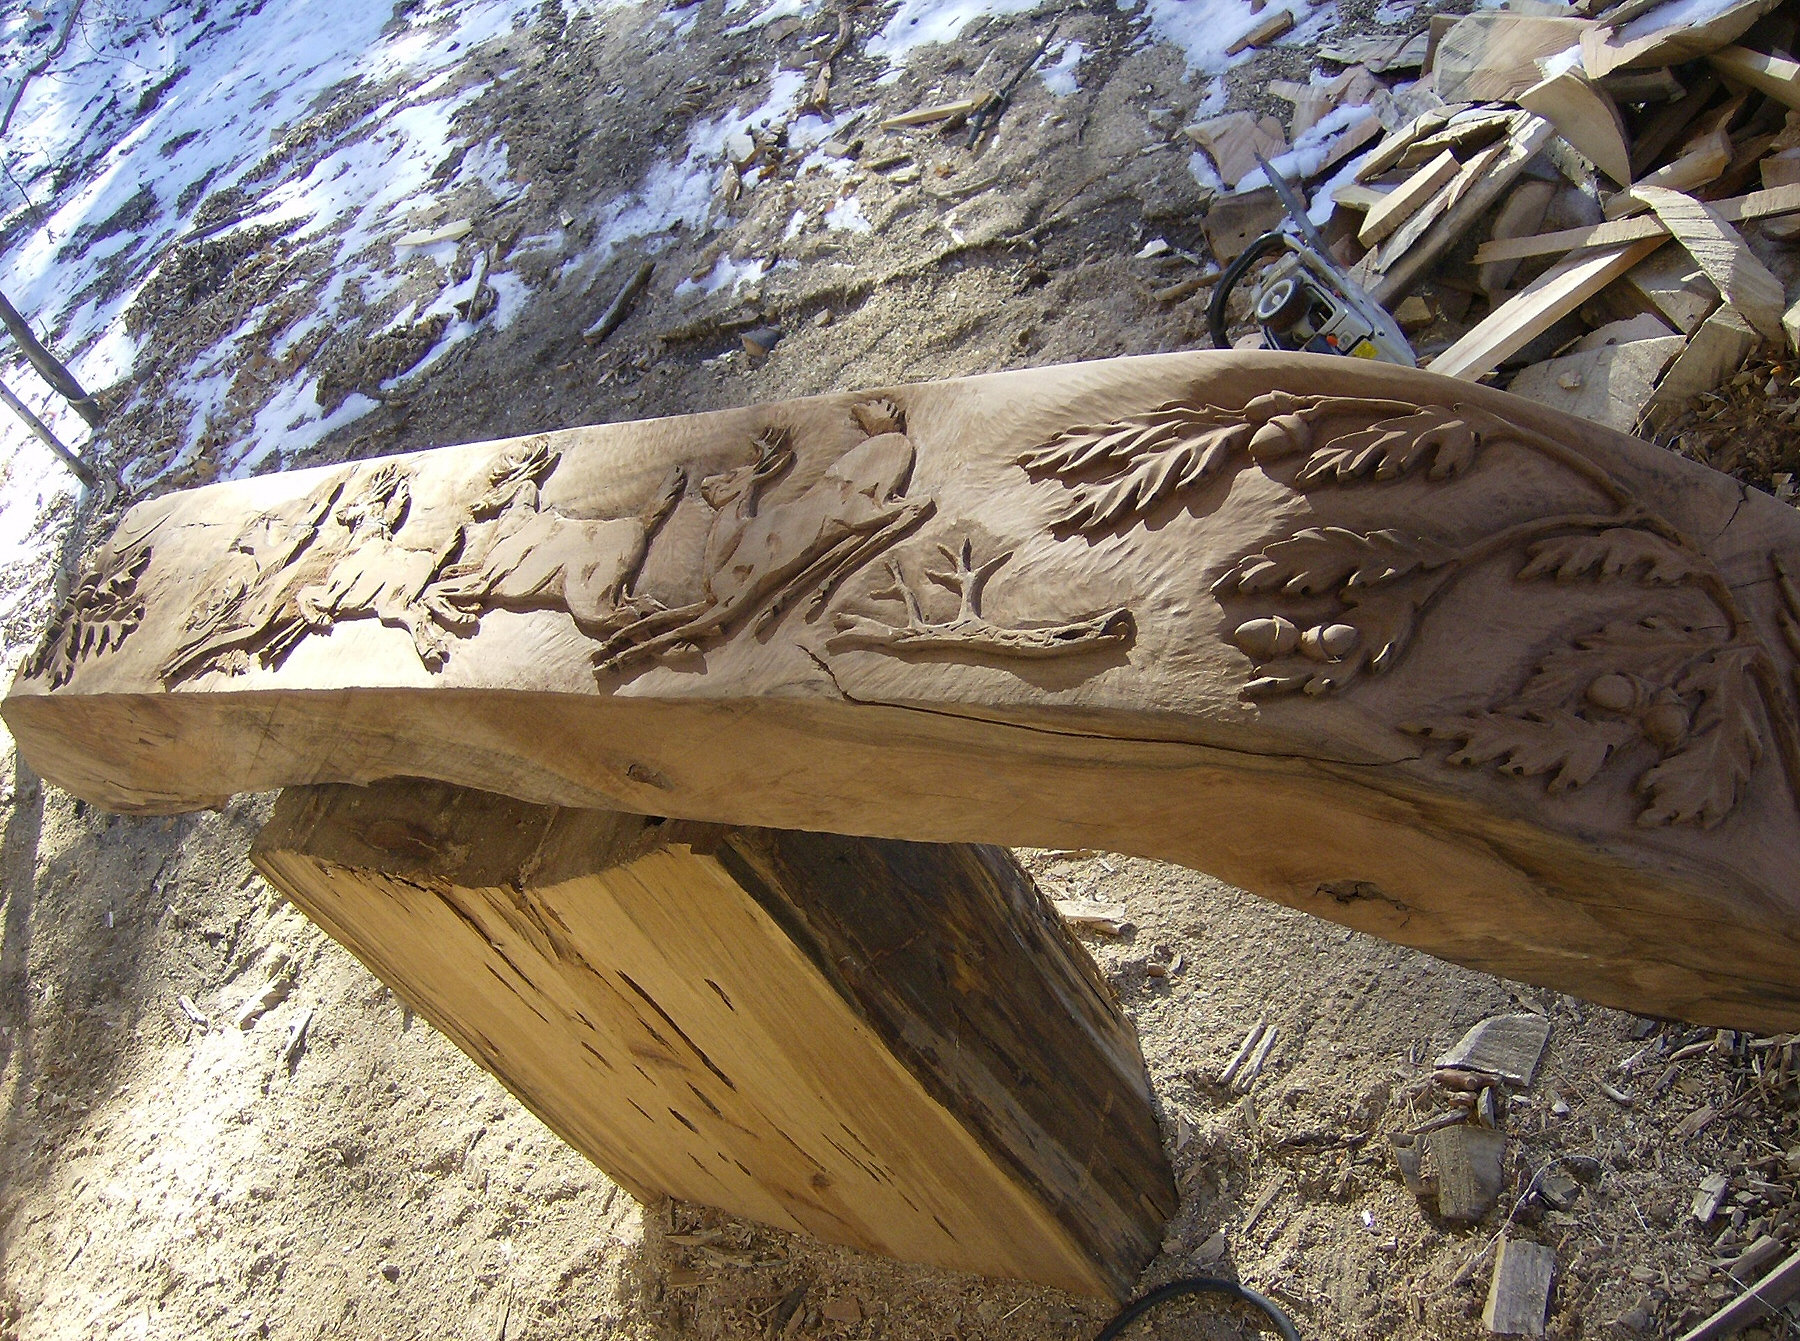 Chainsaw carving and log amenities